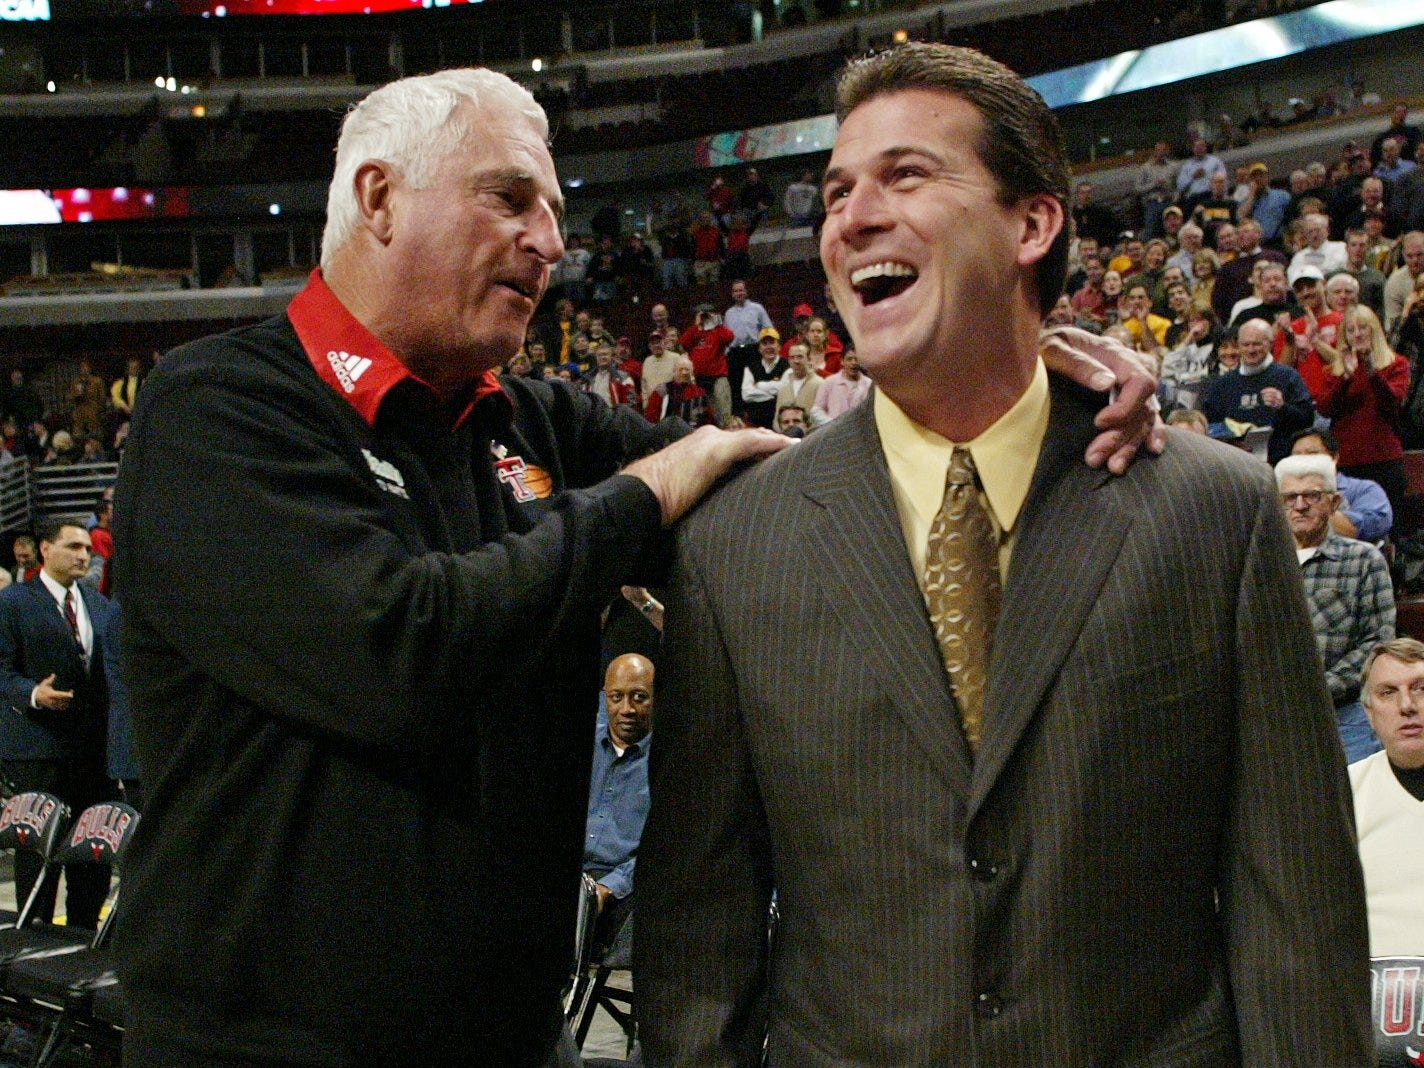 From 2004: Iowa coach Steve Alford and his former coach at Indiana, Bob Knight, the Texas Tech coach, share a laugh in 2004.